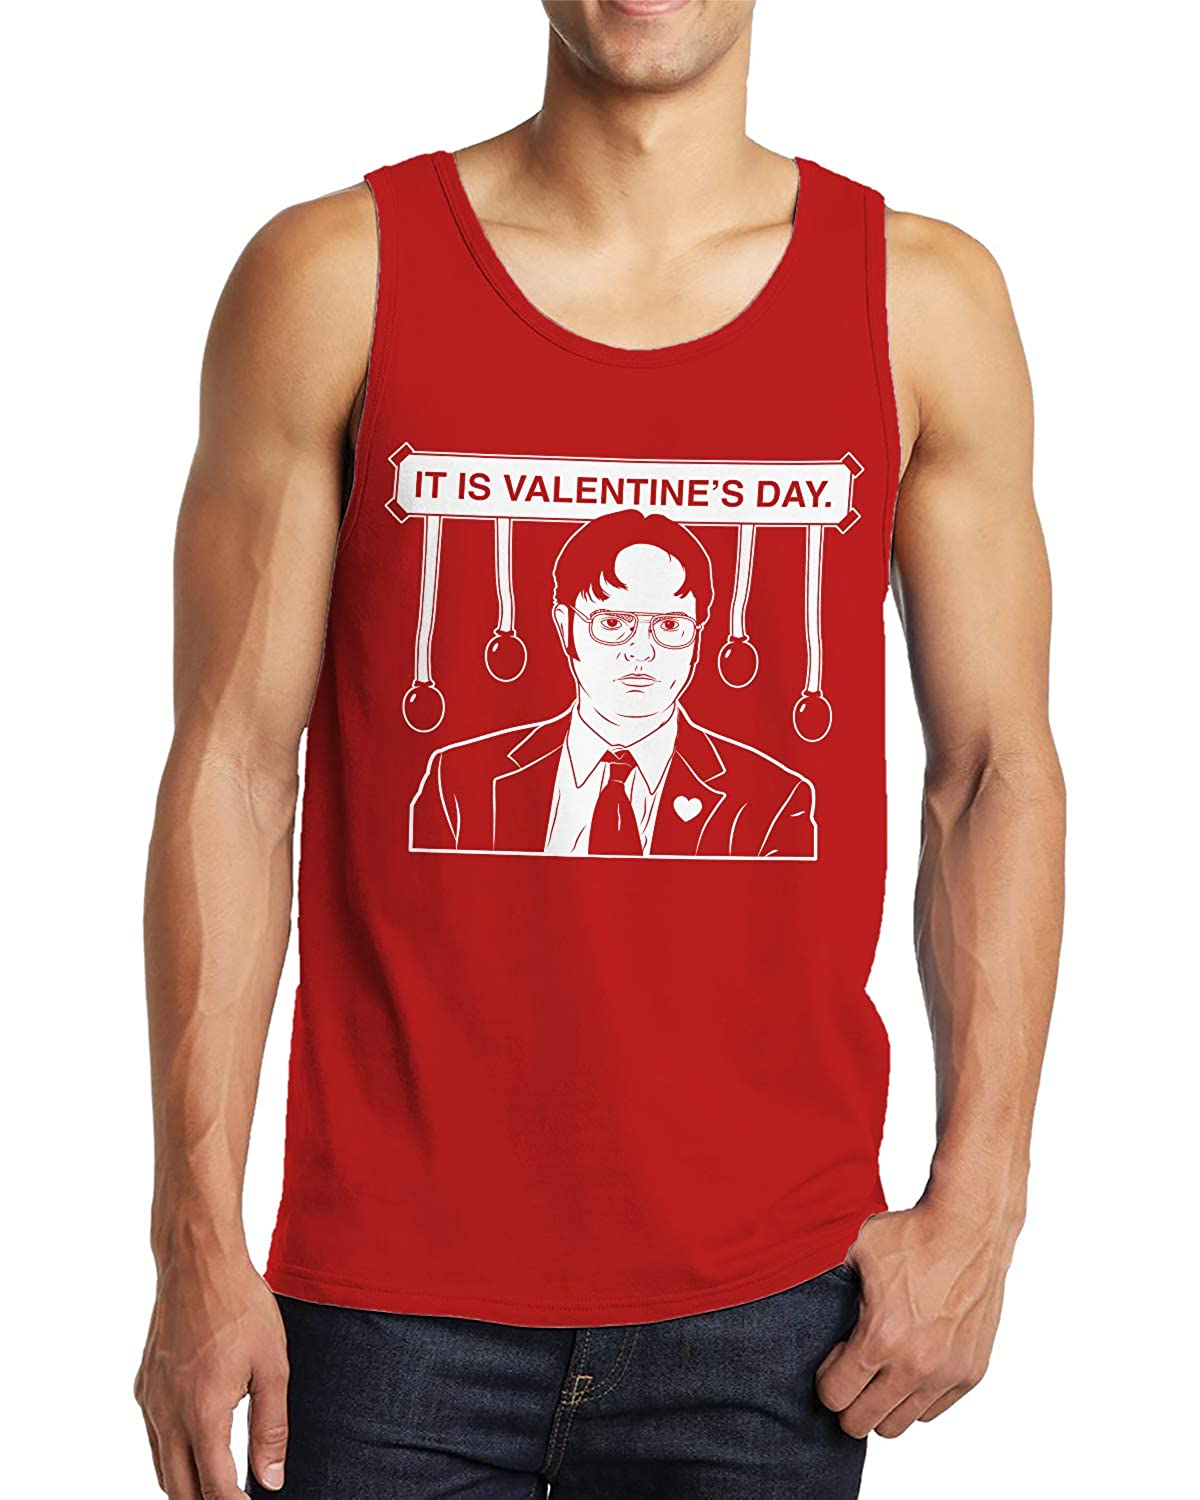 SpiritForged Apparel Dwight It is Valentines Day Mens Tank Top